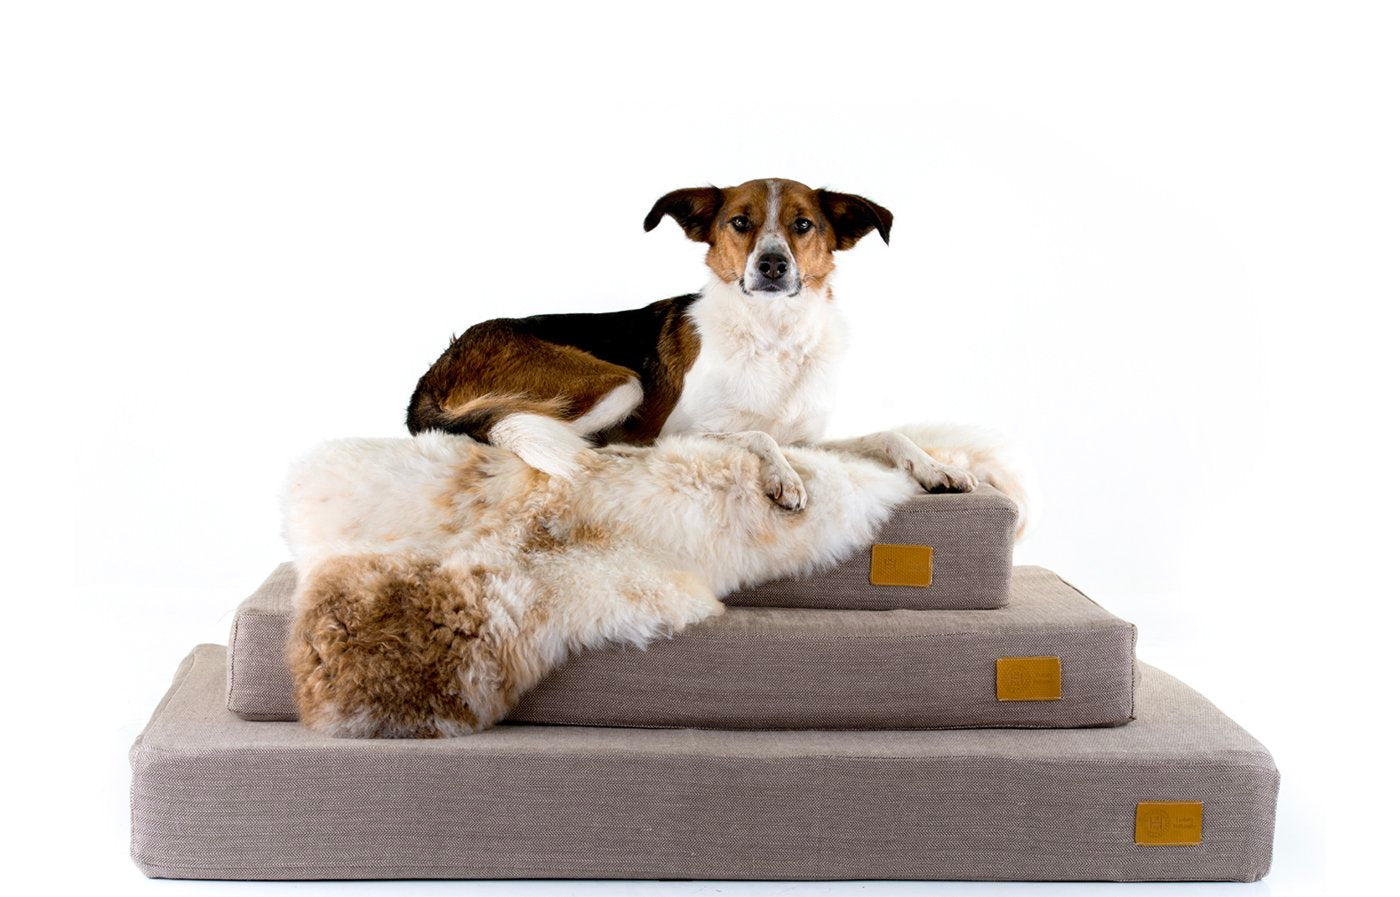 Orthopaedic beds for arthritic dogs